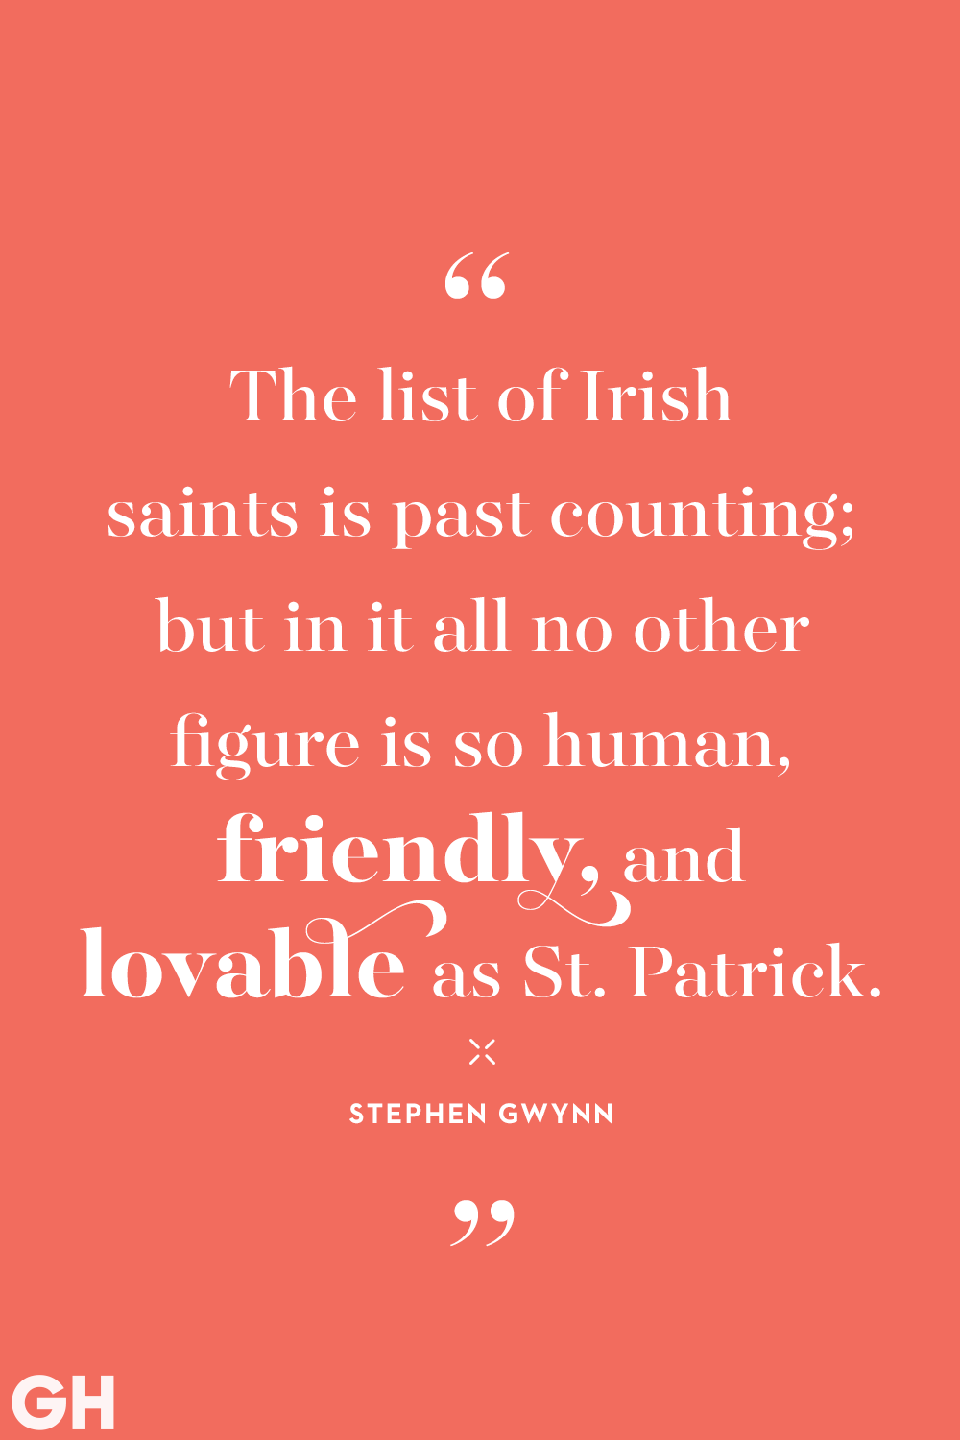 <p>The list of Irish saints is past counting; but in it all no other figure is so human, friendly, and lovable as St. Patrick.</p>